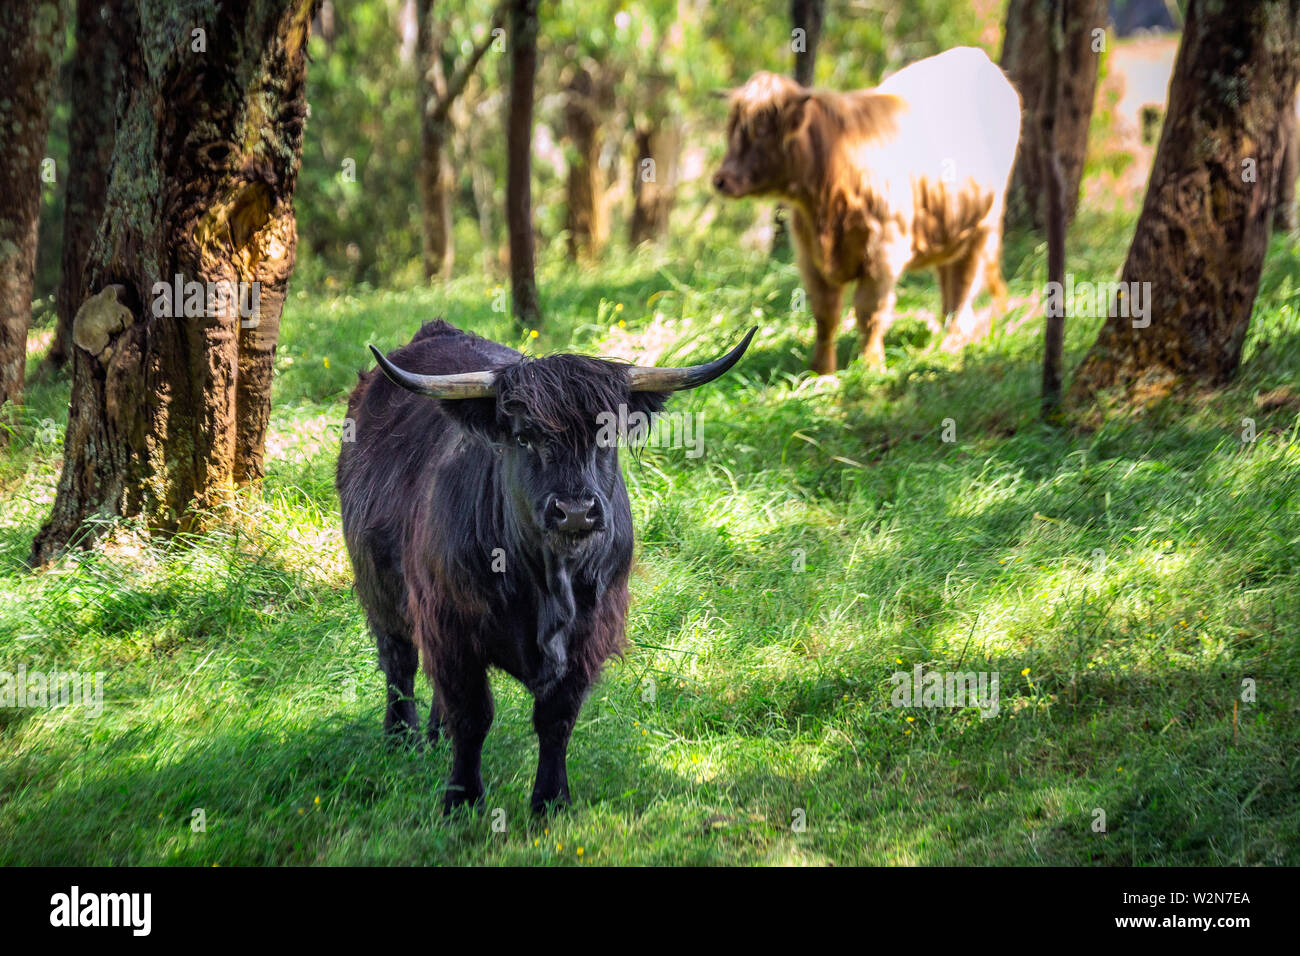 Scottish cow in a green meadow and forest in the background in the Southern Scenic Route, New Zealand. - Stock Image